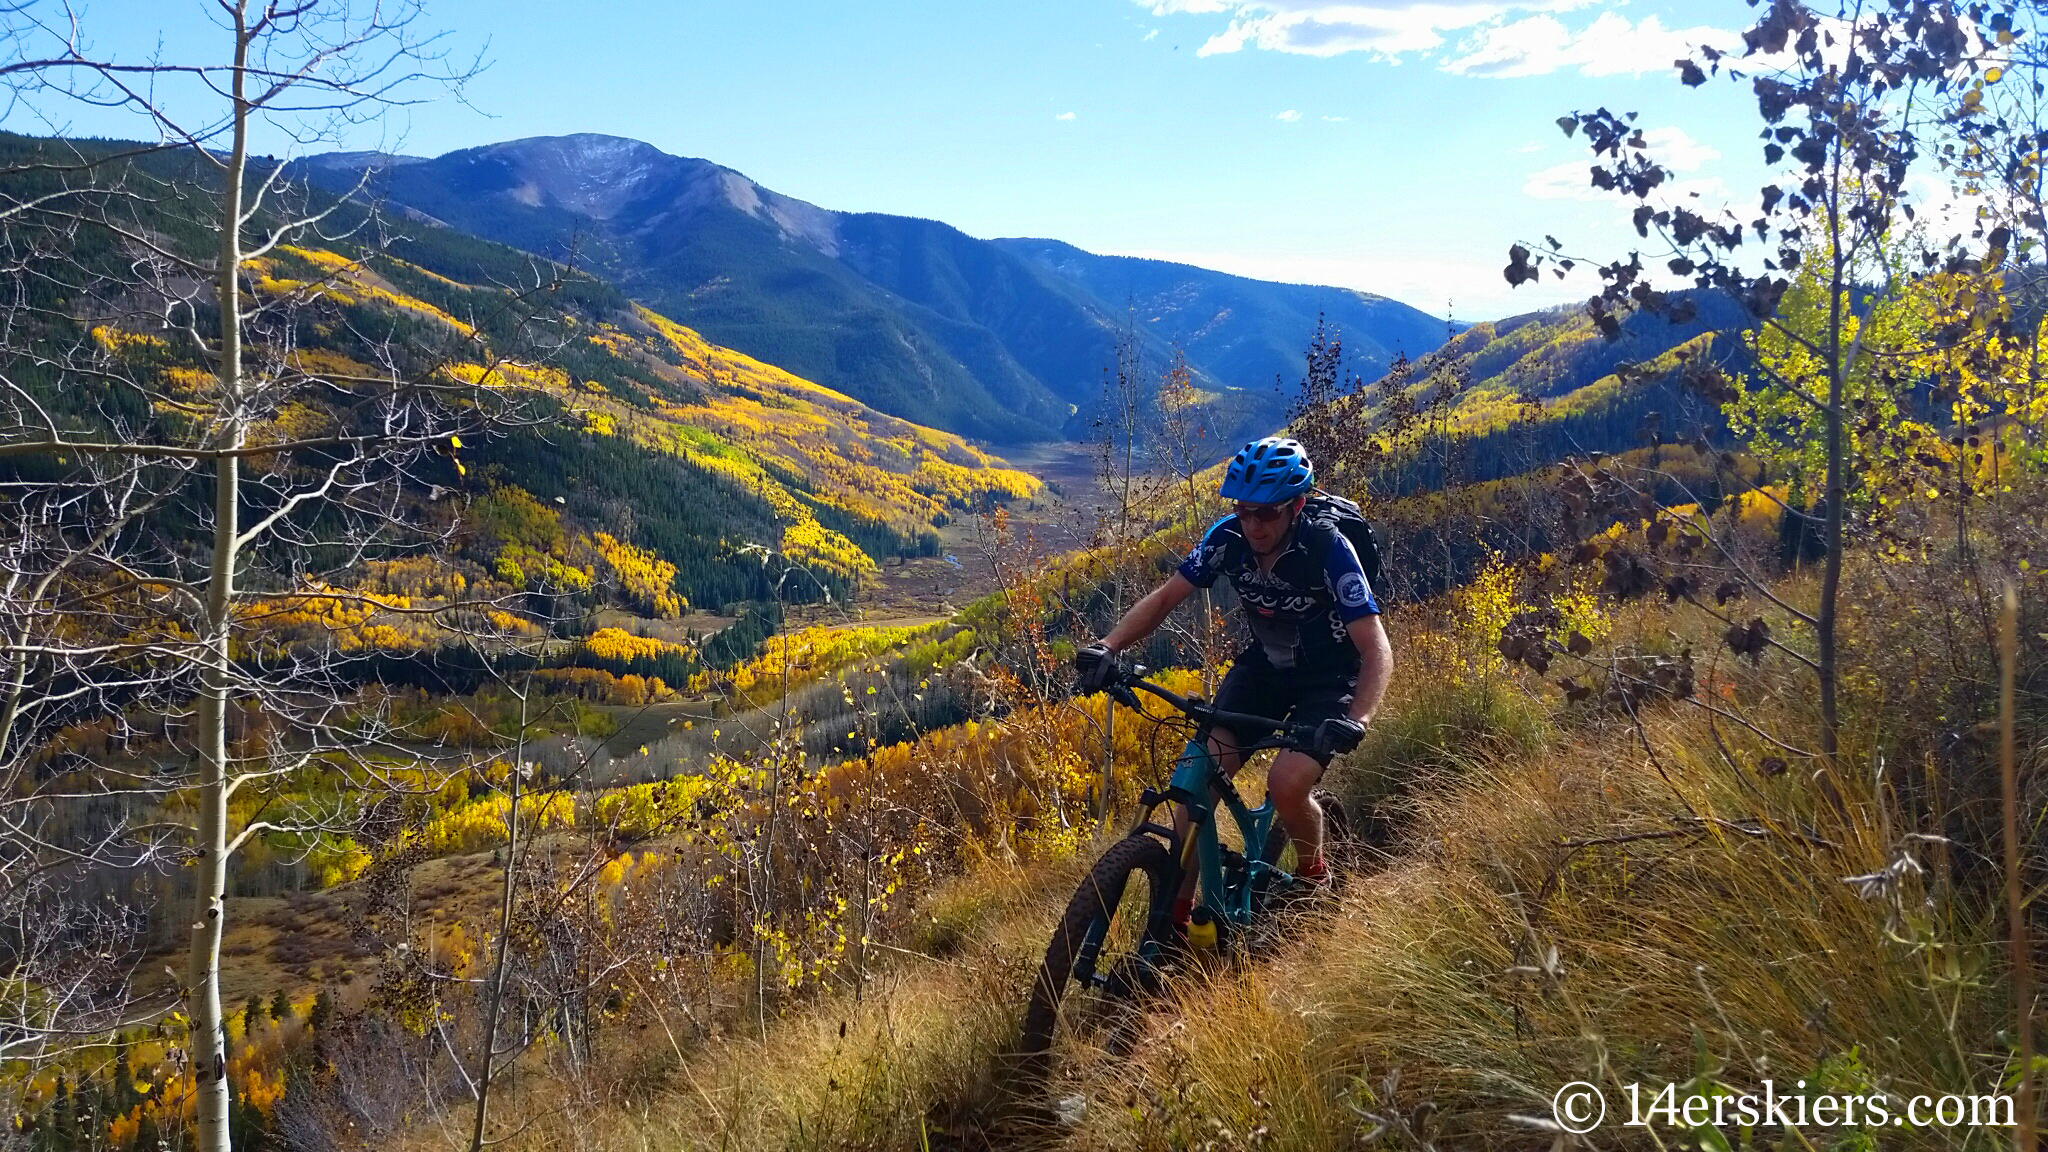 September mountain biking in Crested Butte